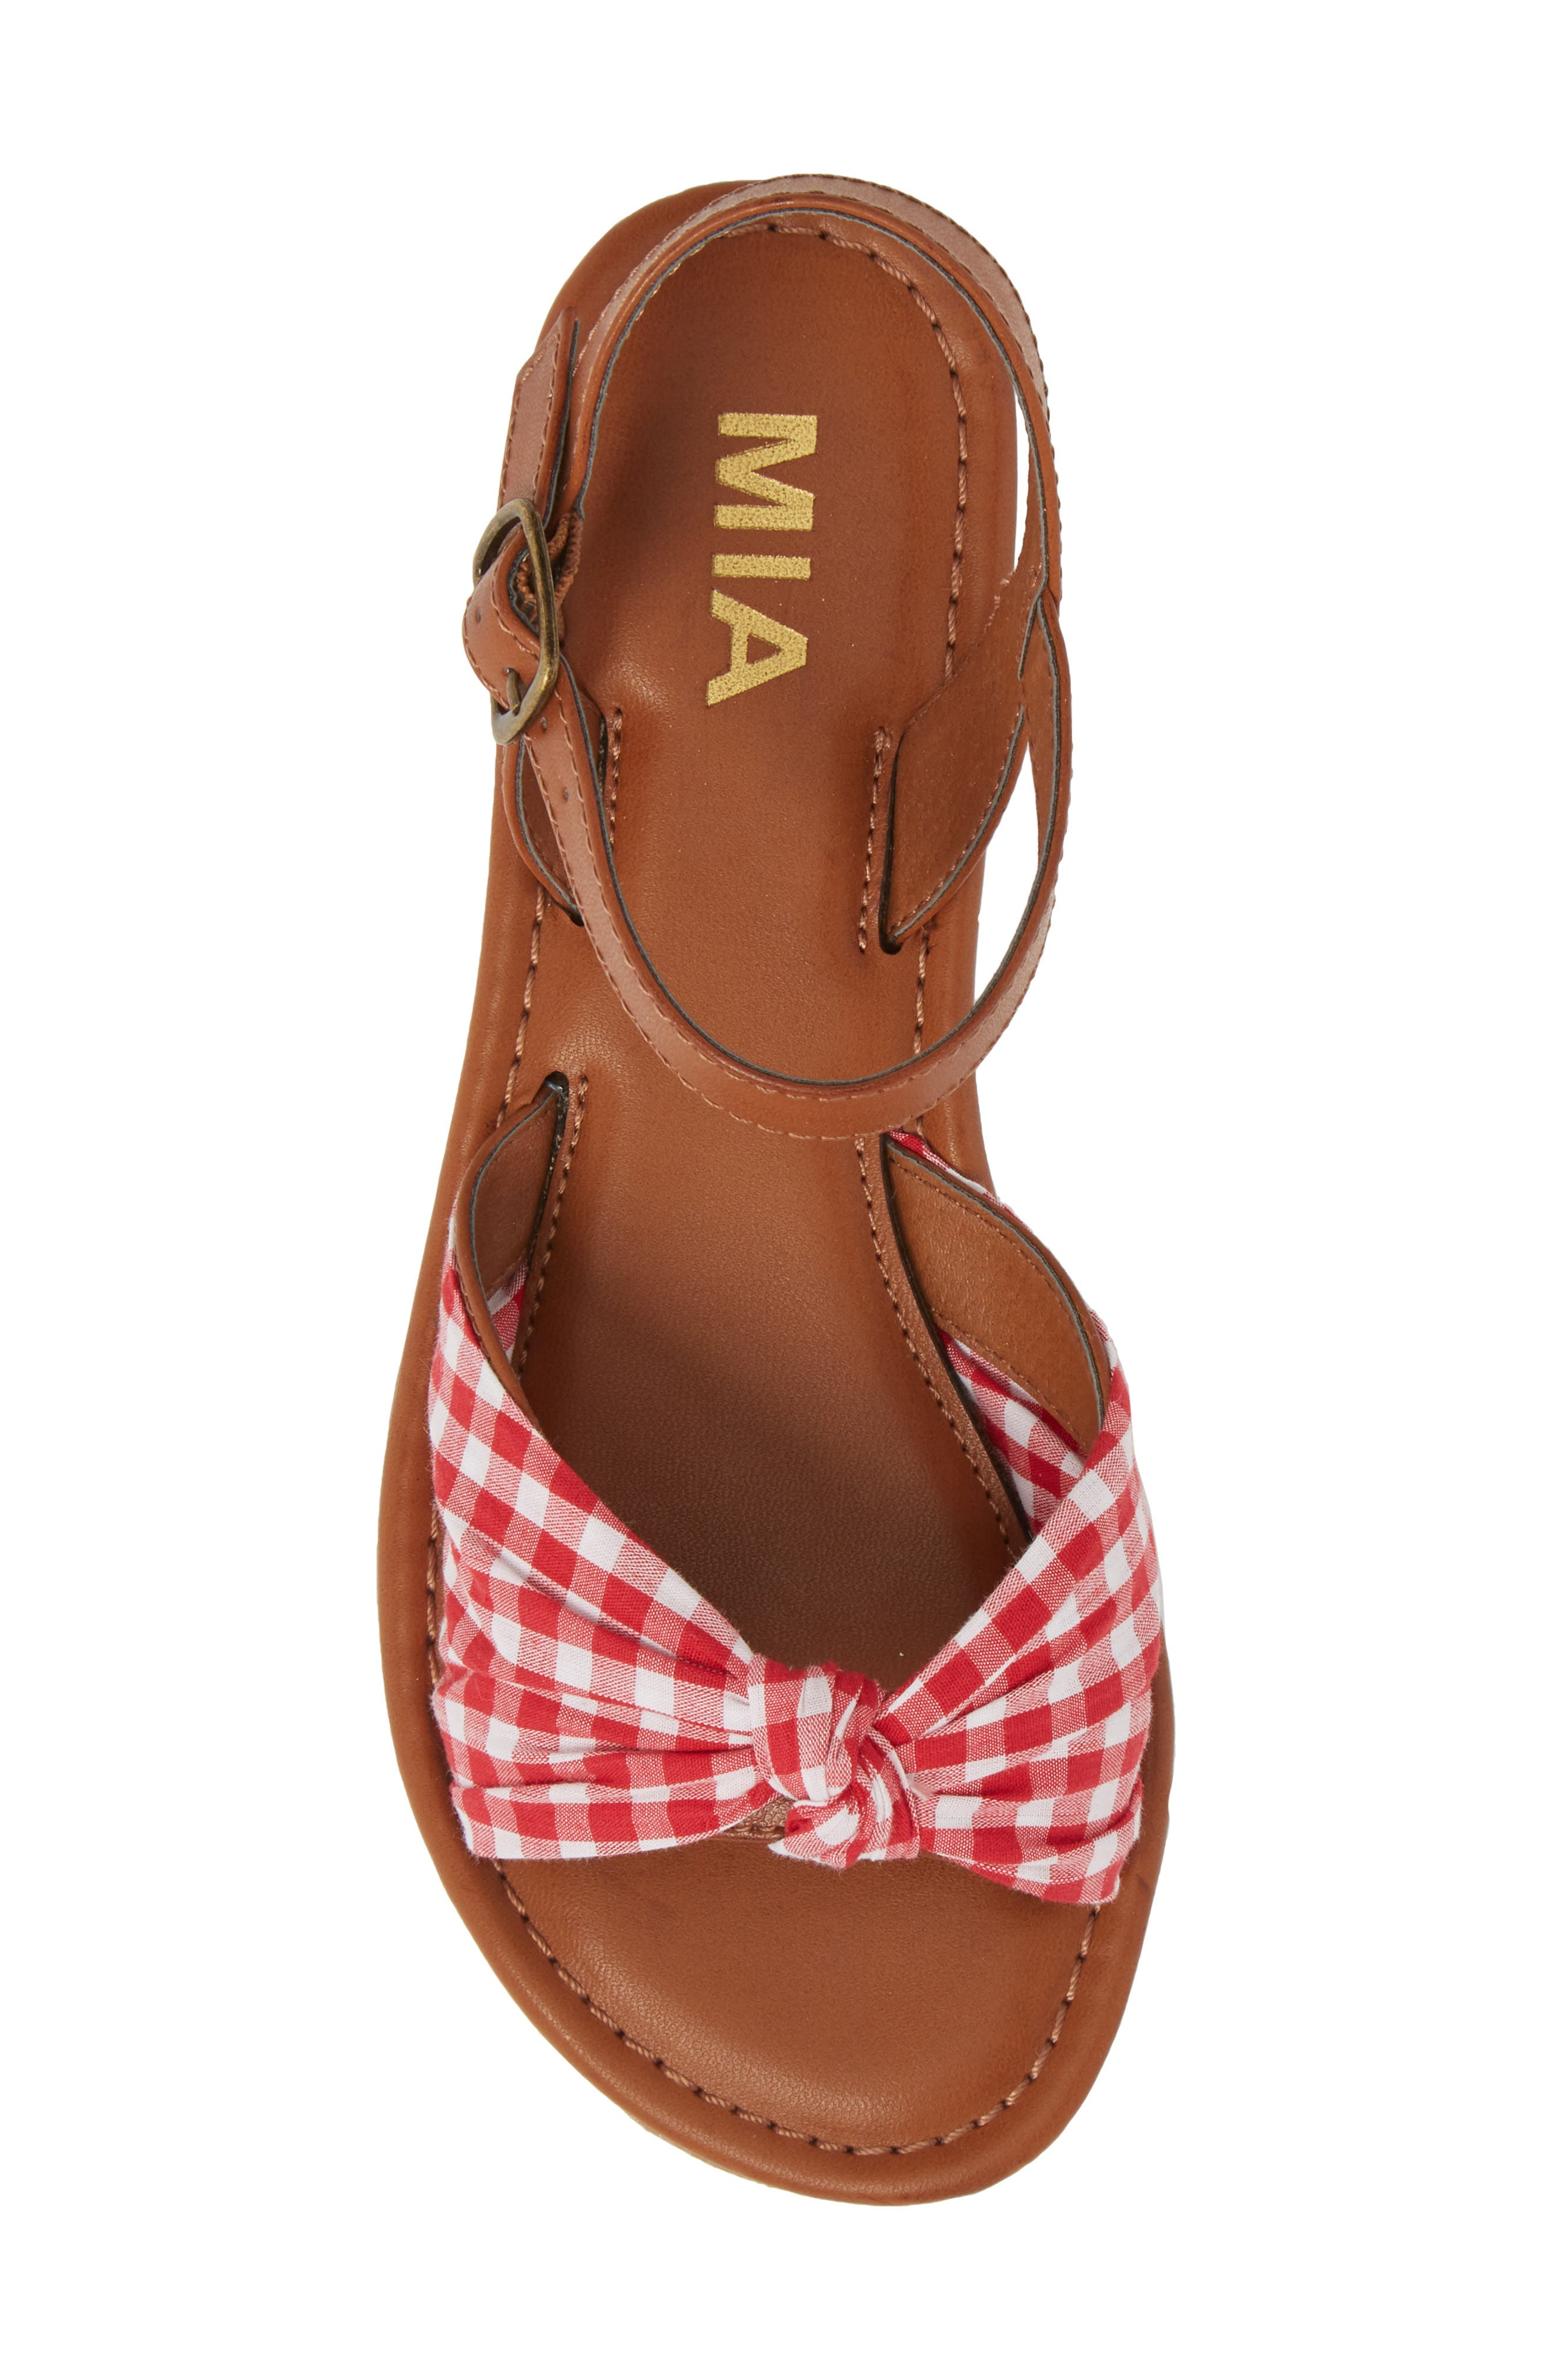 Neala Bow Sandal,                             Alternate thumbnail 5, color,                             Red/ White Fabric